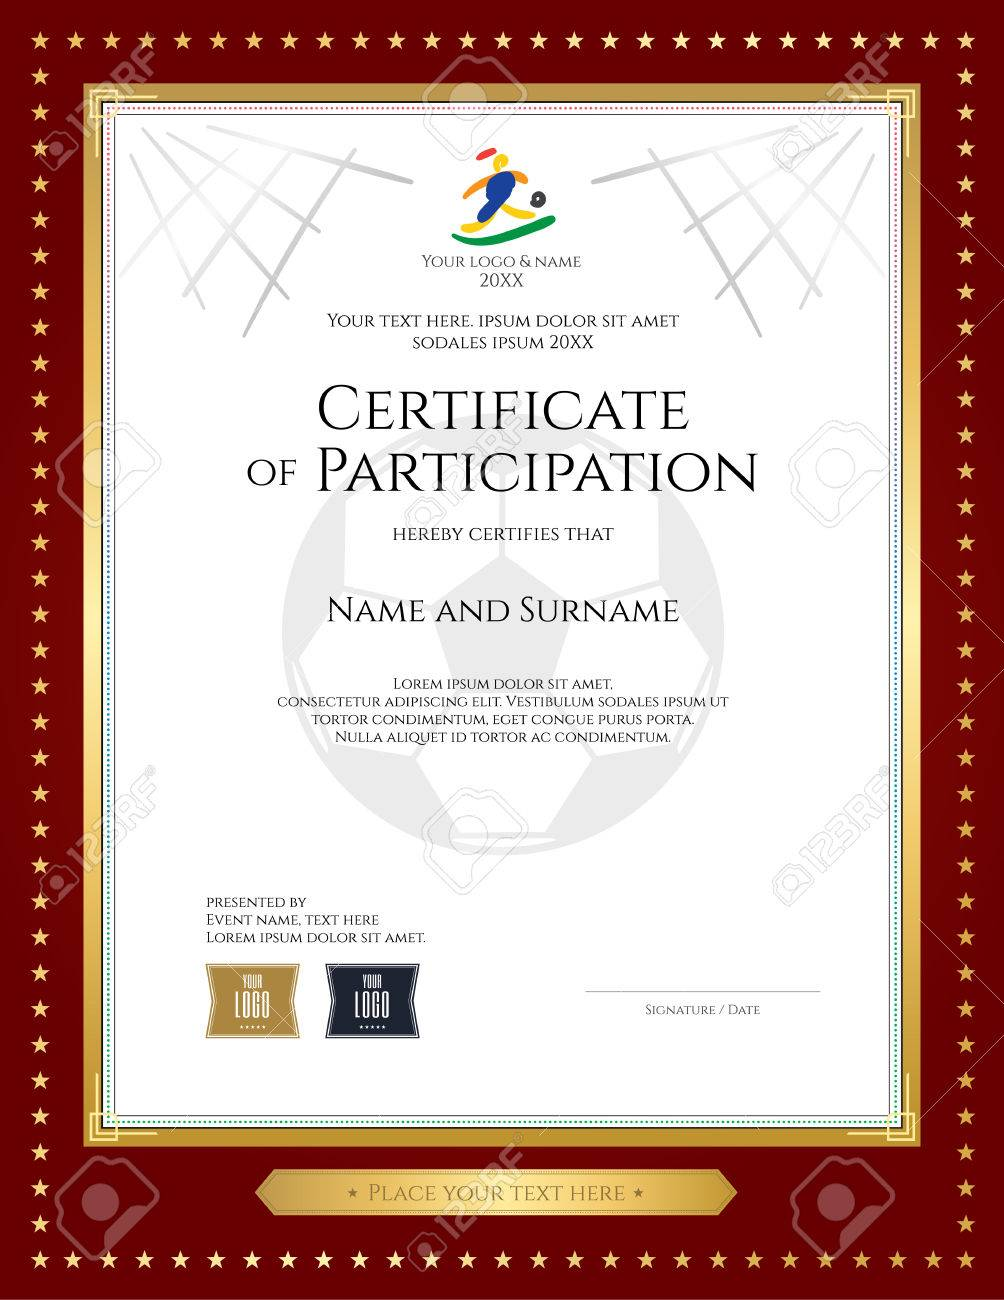 Sport Theme Certificate Of Participation Template For Football ...